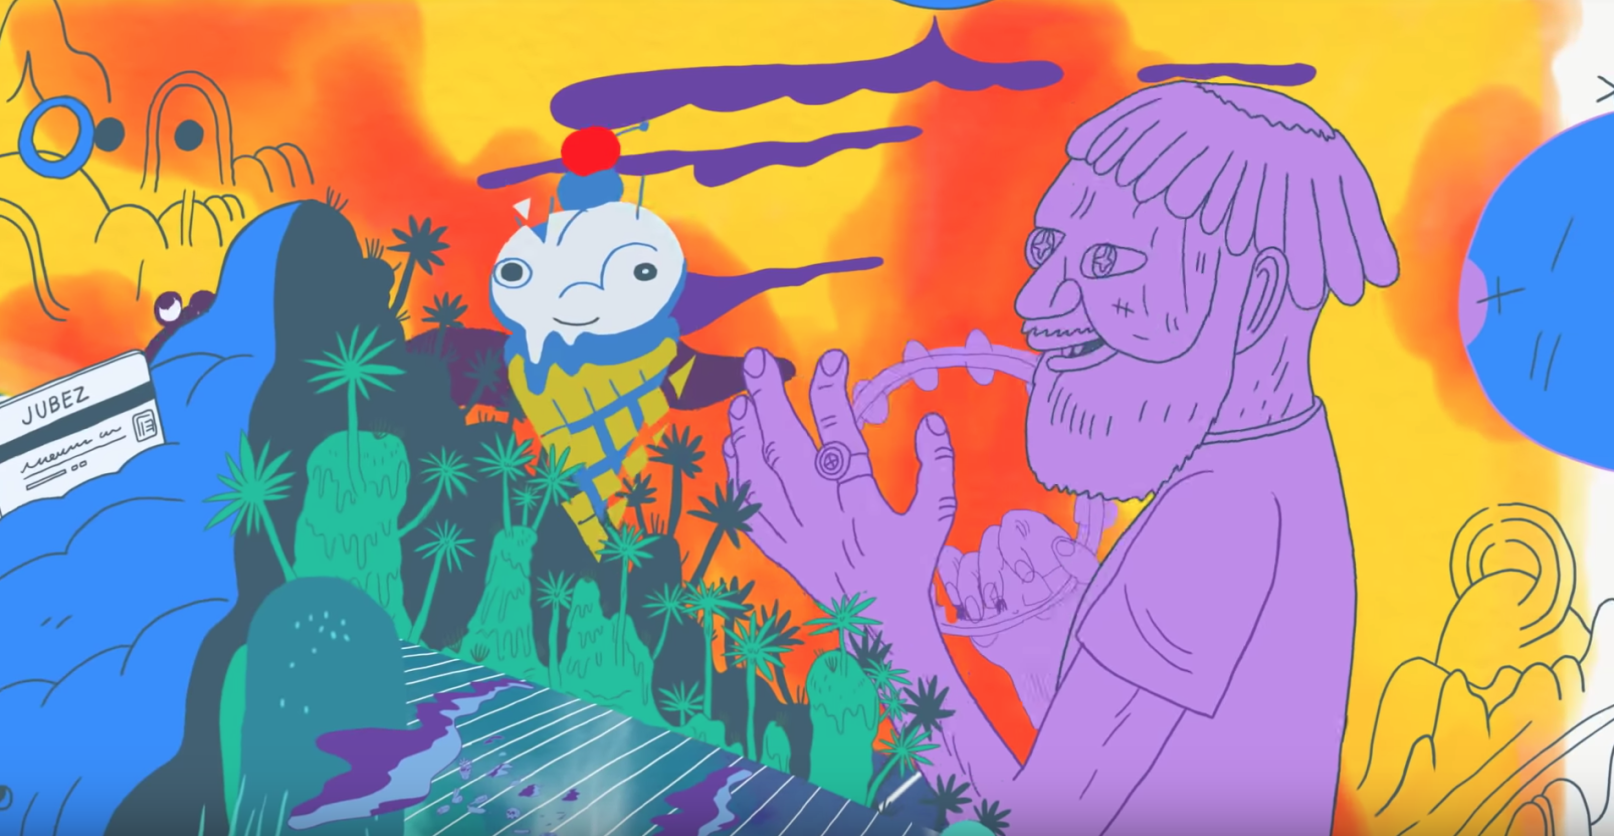 Watch Father John Misty's animated new video for 'Date Night'